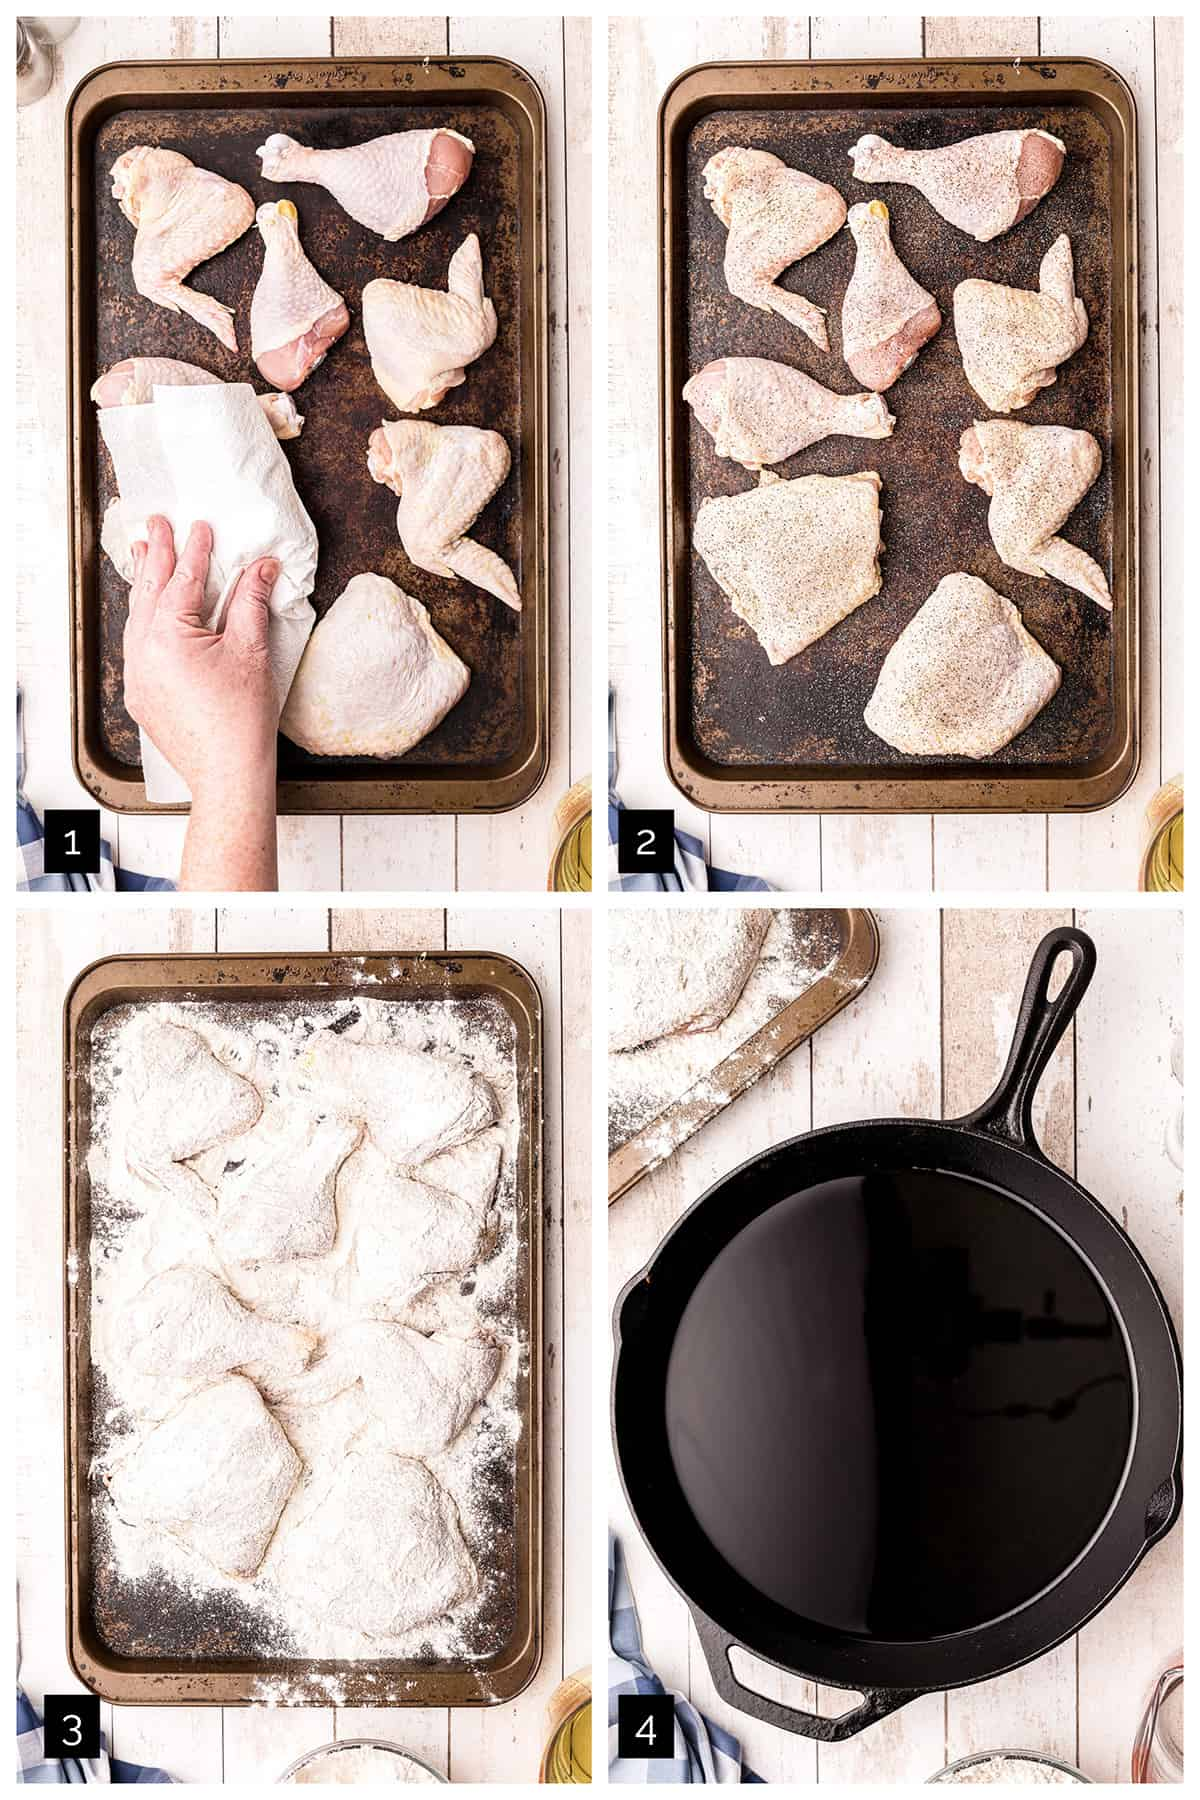 Photo collage showing the first four steps of the process for making simple fried chicken.